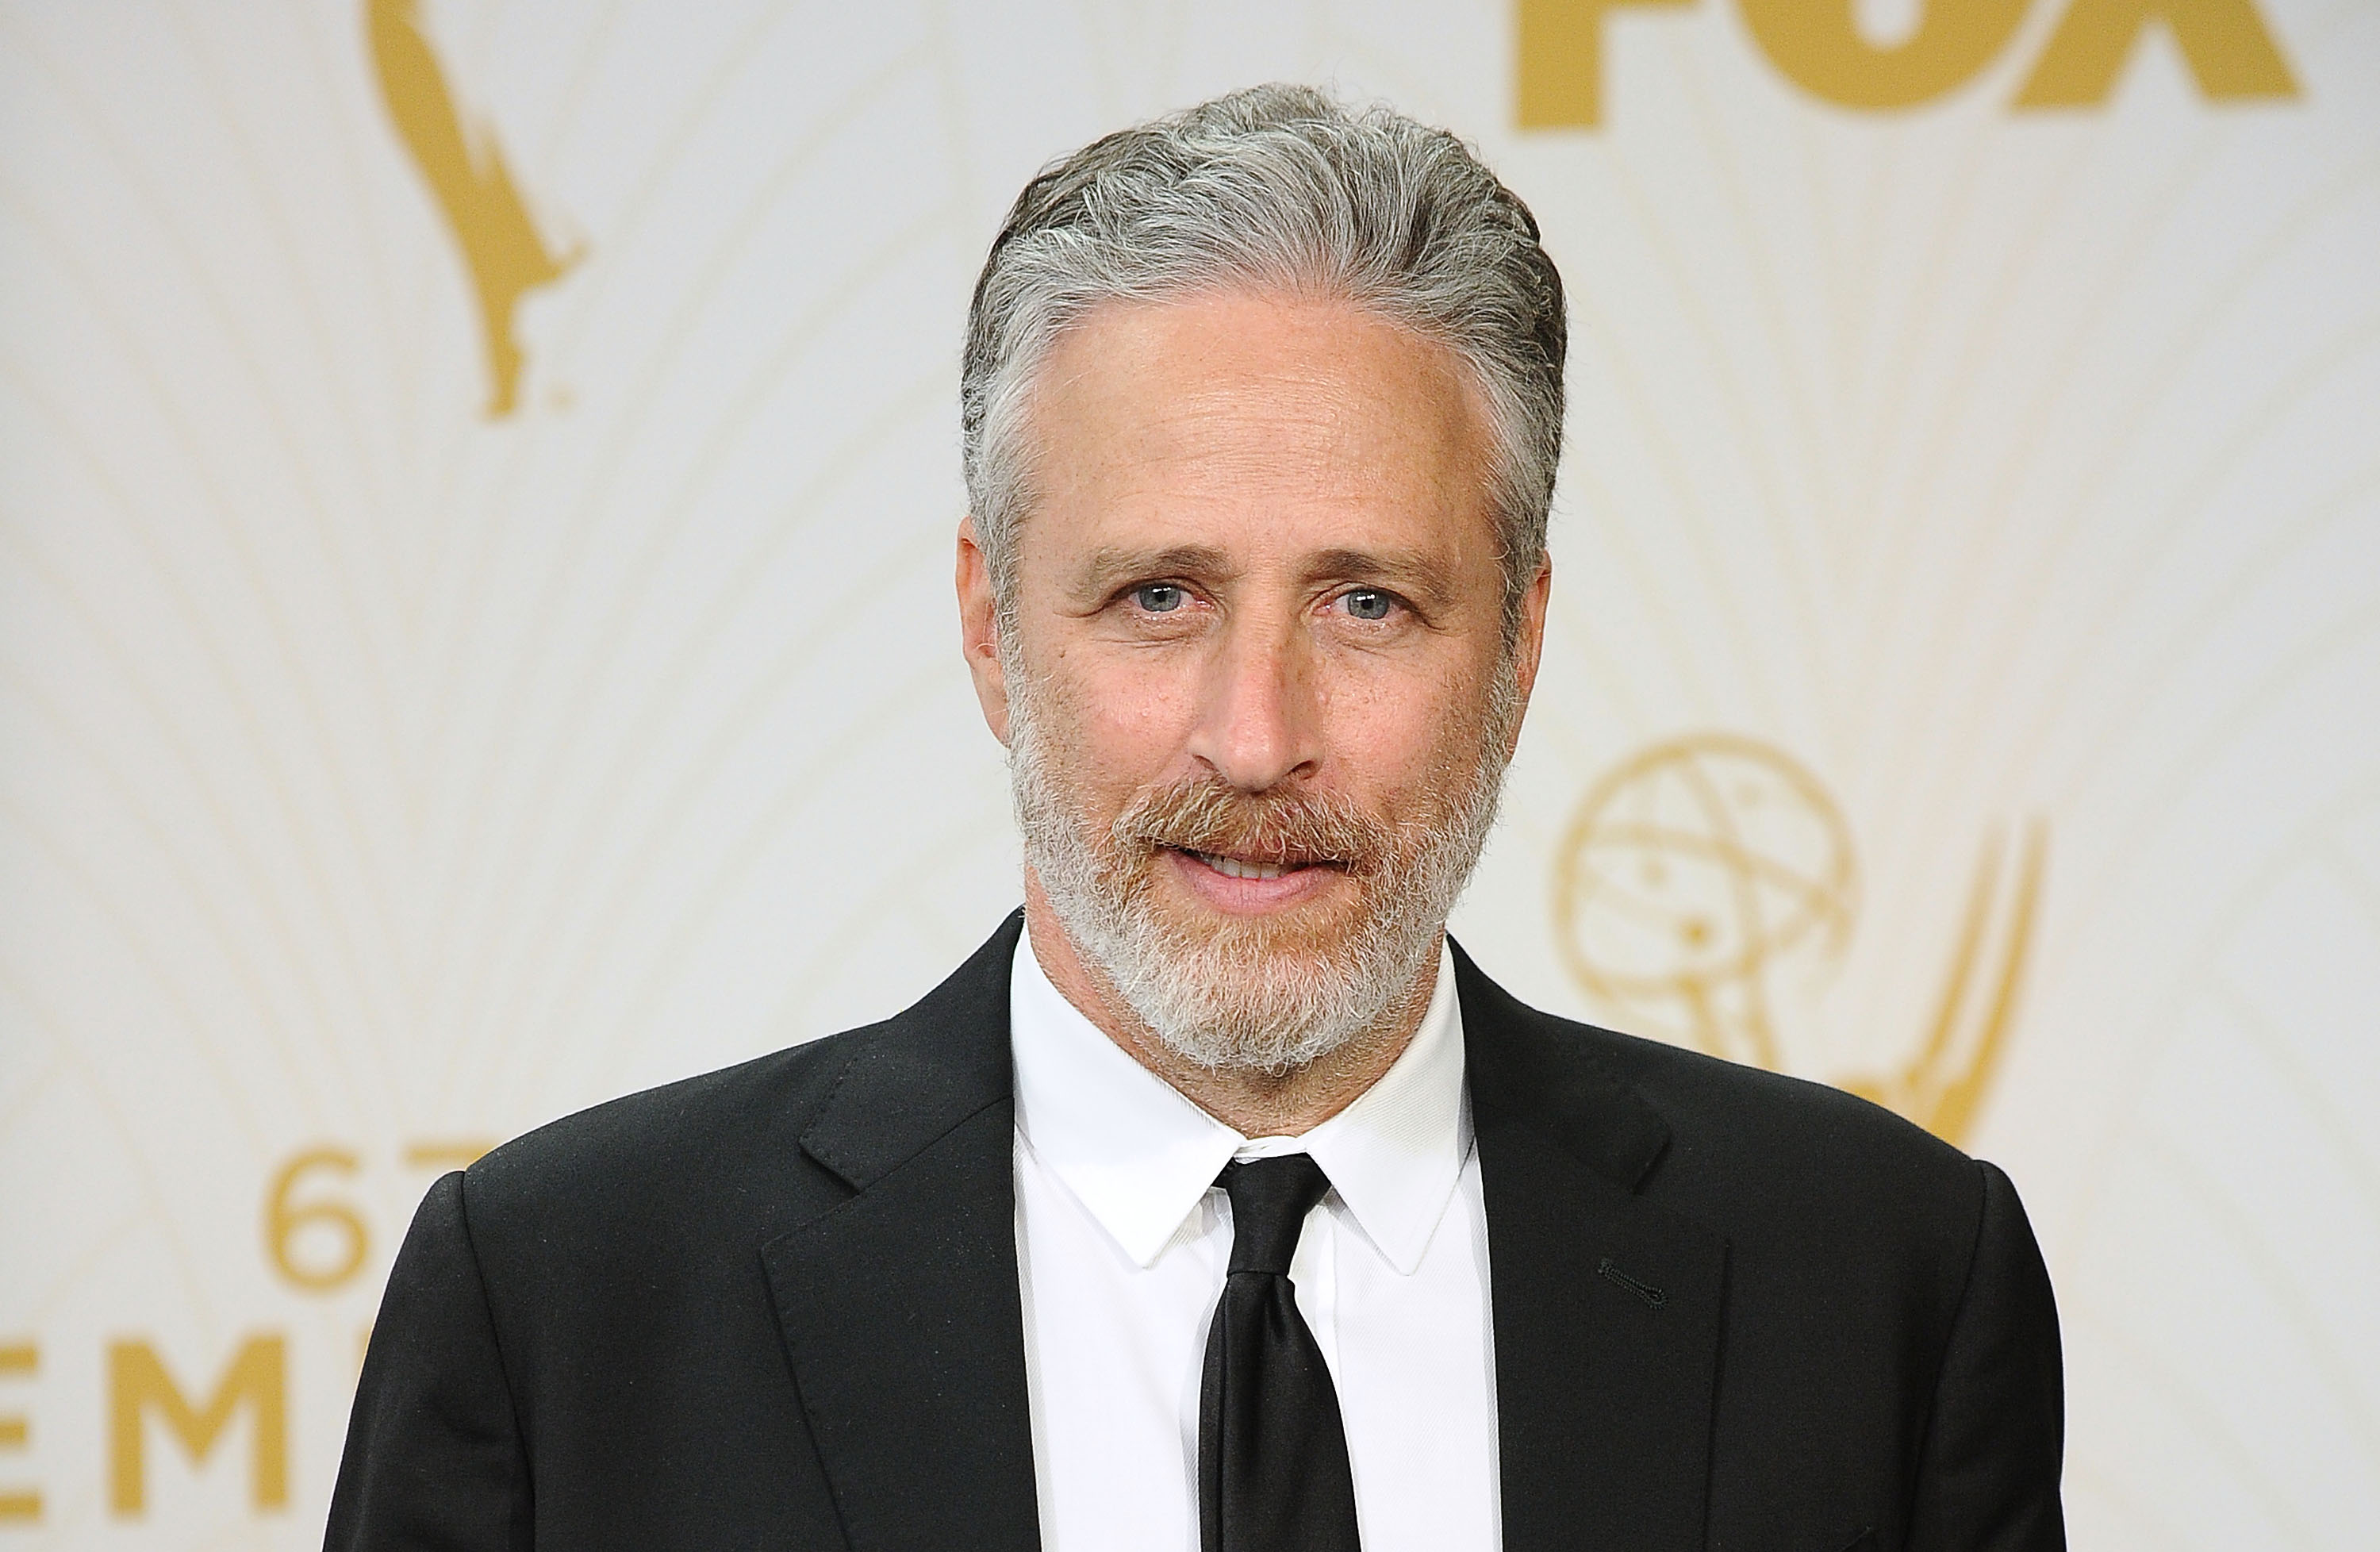 Jon Stewart poses in the press room at the 67th annual Primetime Emmy Awards at Microsoft Theater on September 20, 2015 in Los Angeles, California.